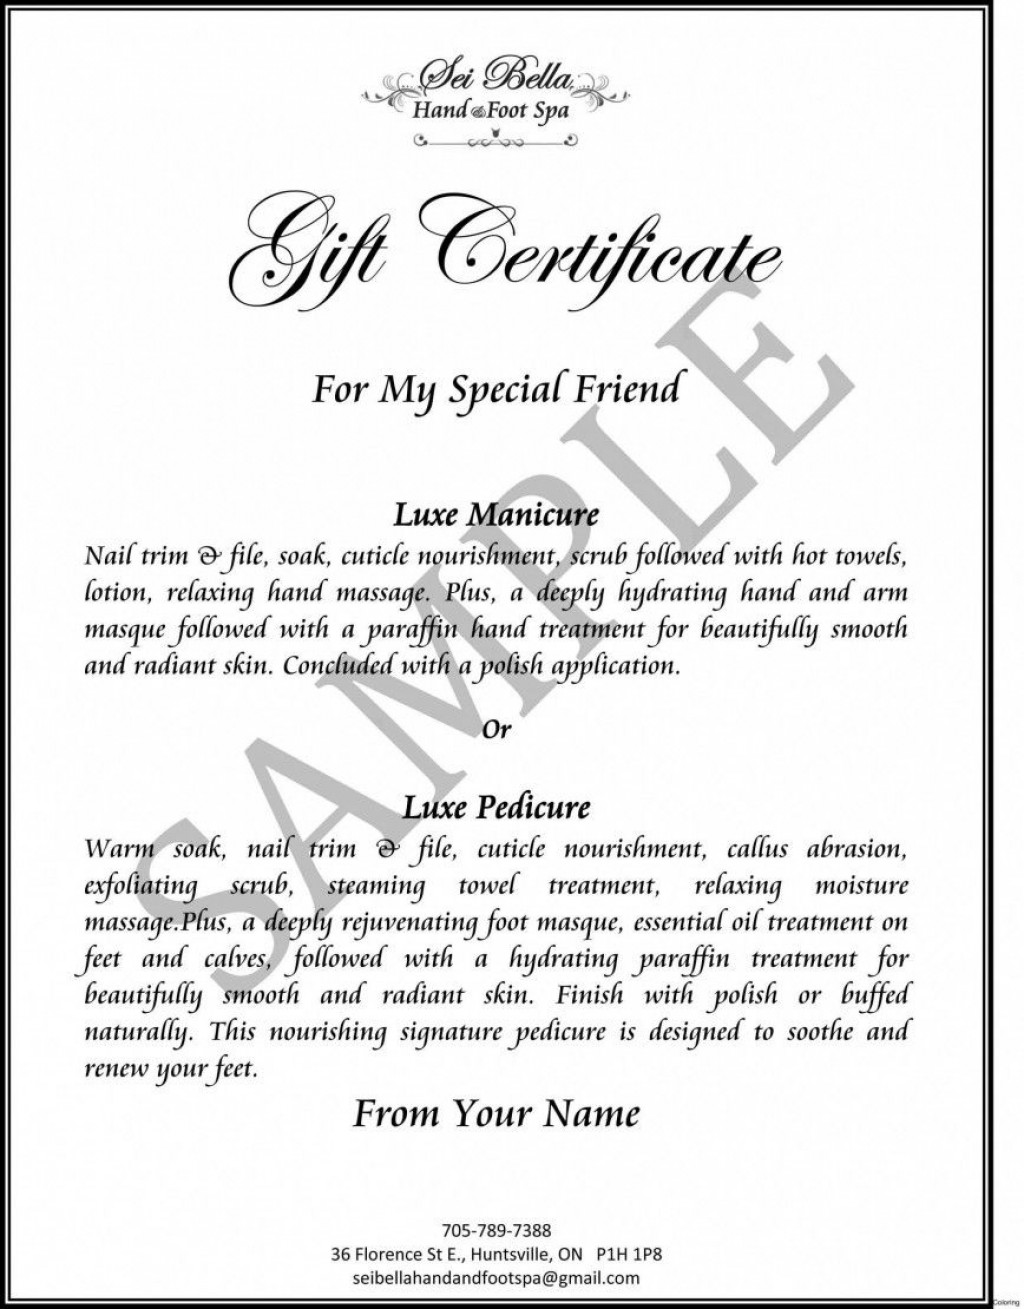 003 Dreaded Free Silent Auction Gift Certificate Template High Def Large